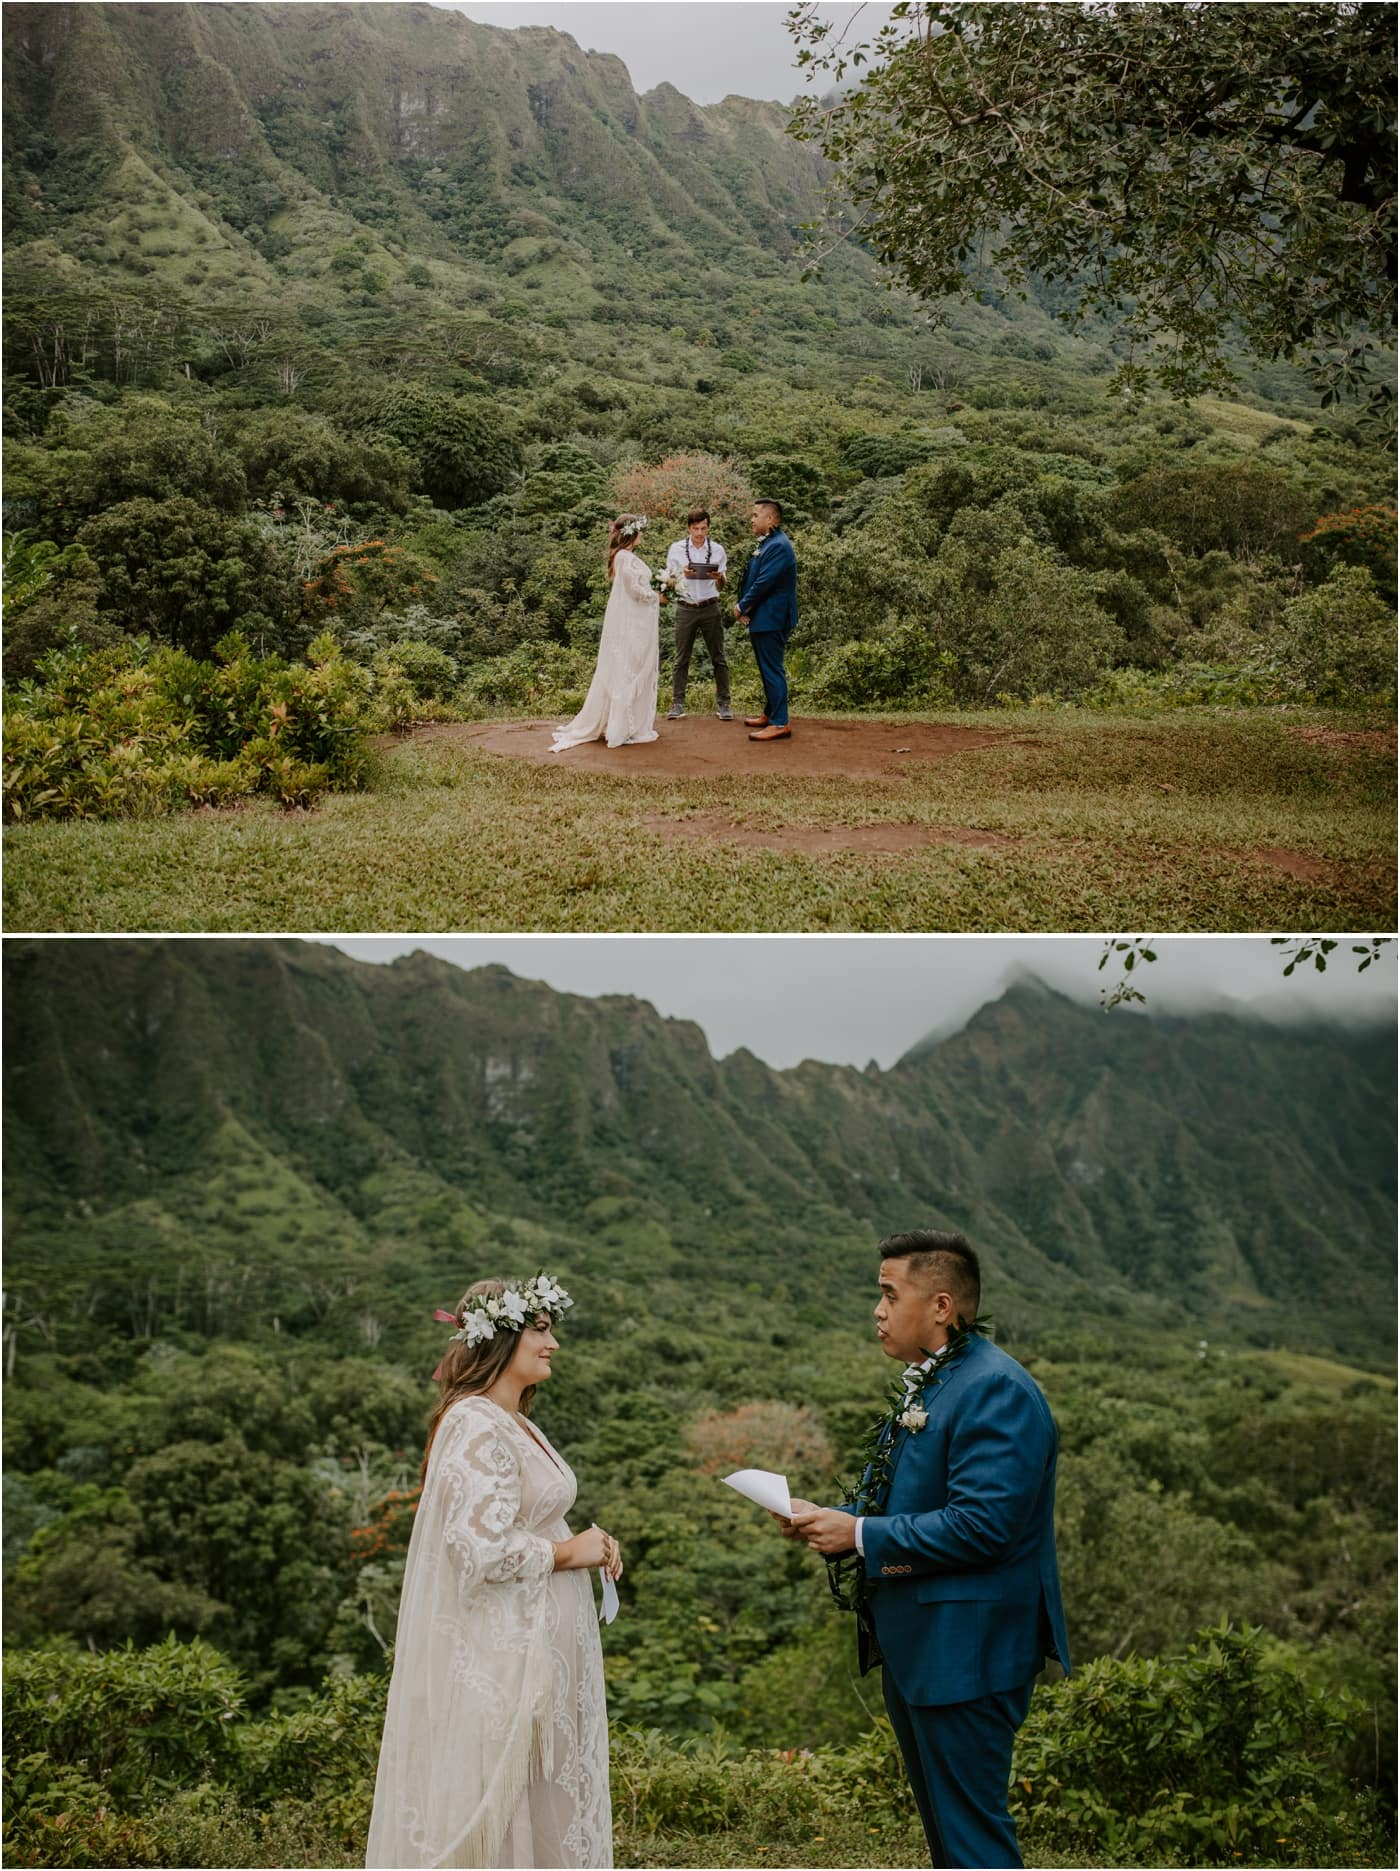 When to do your Hawaii Elopement